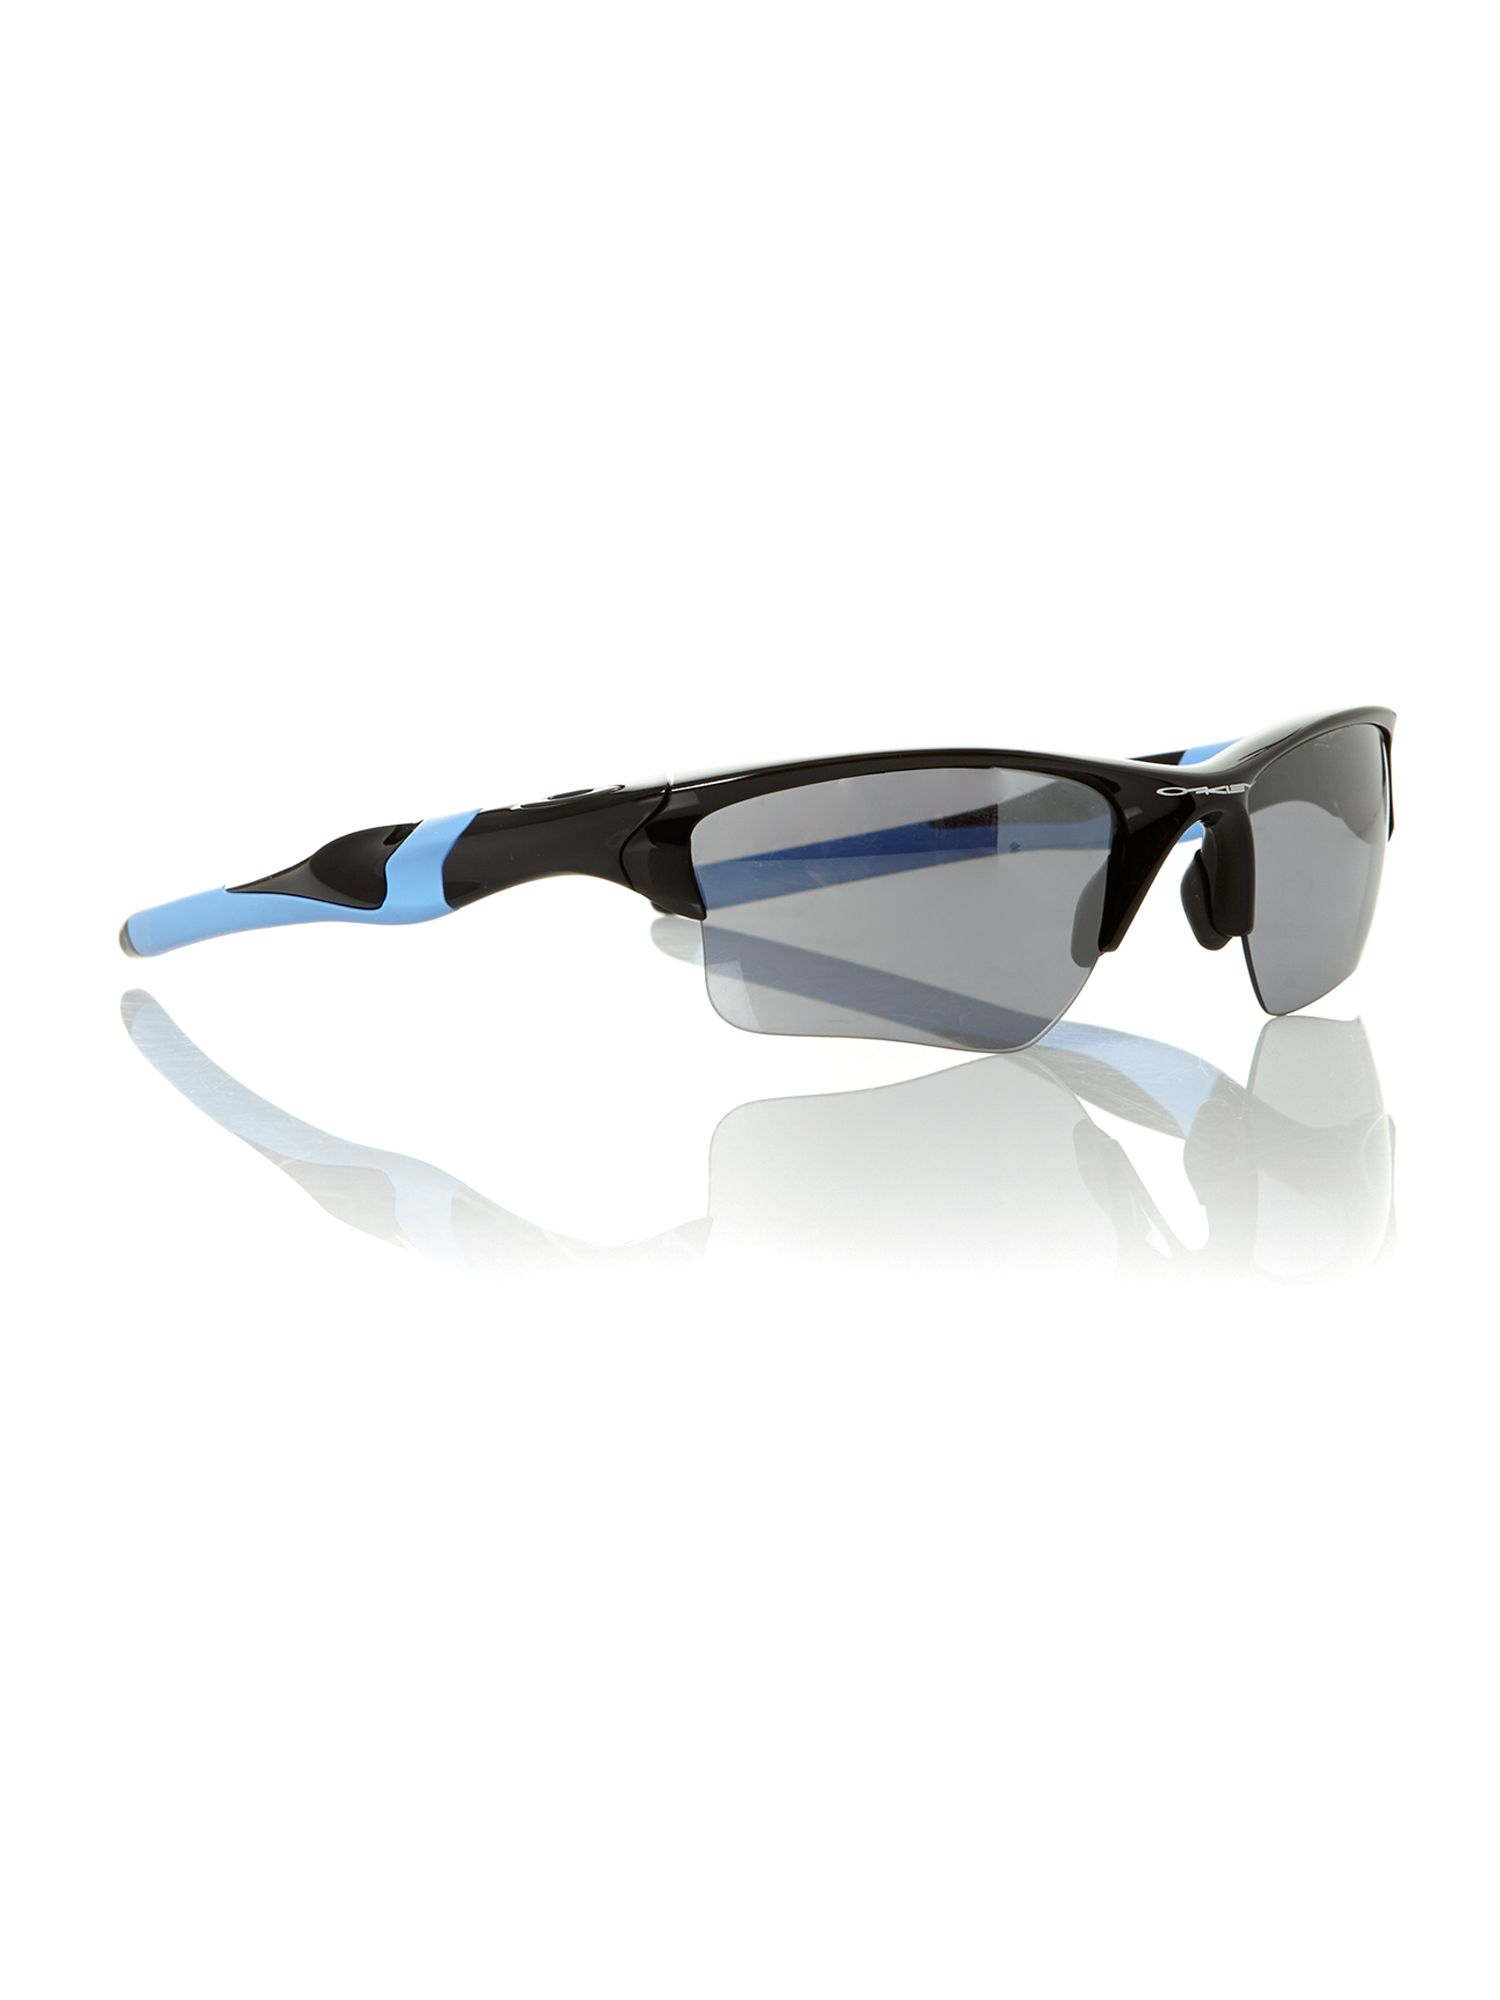 Men`s OO9159 polished black sunglasses